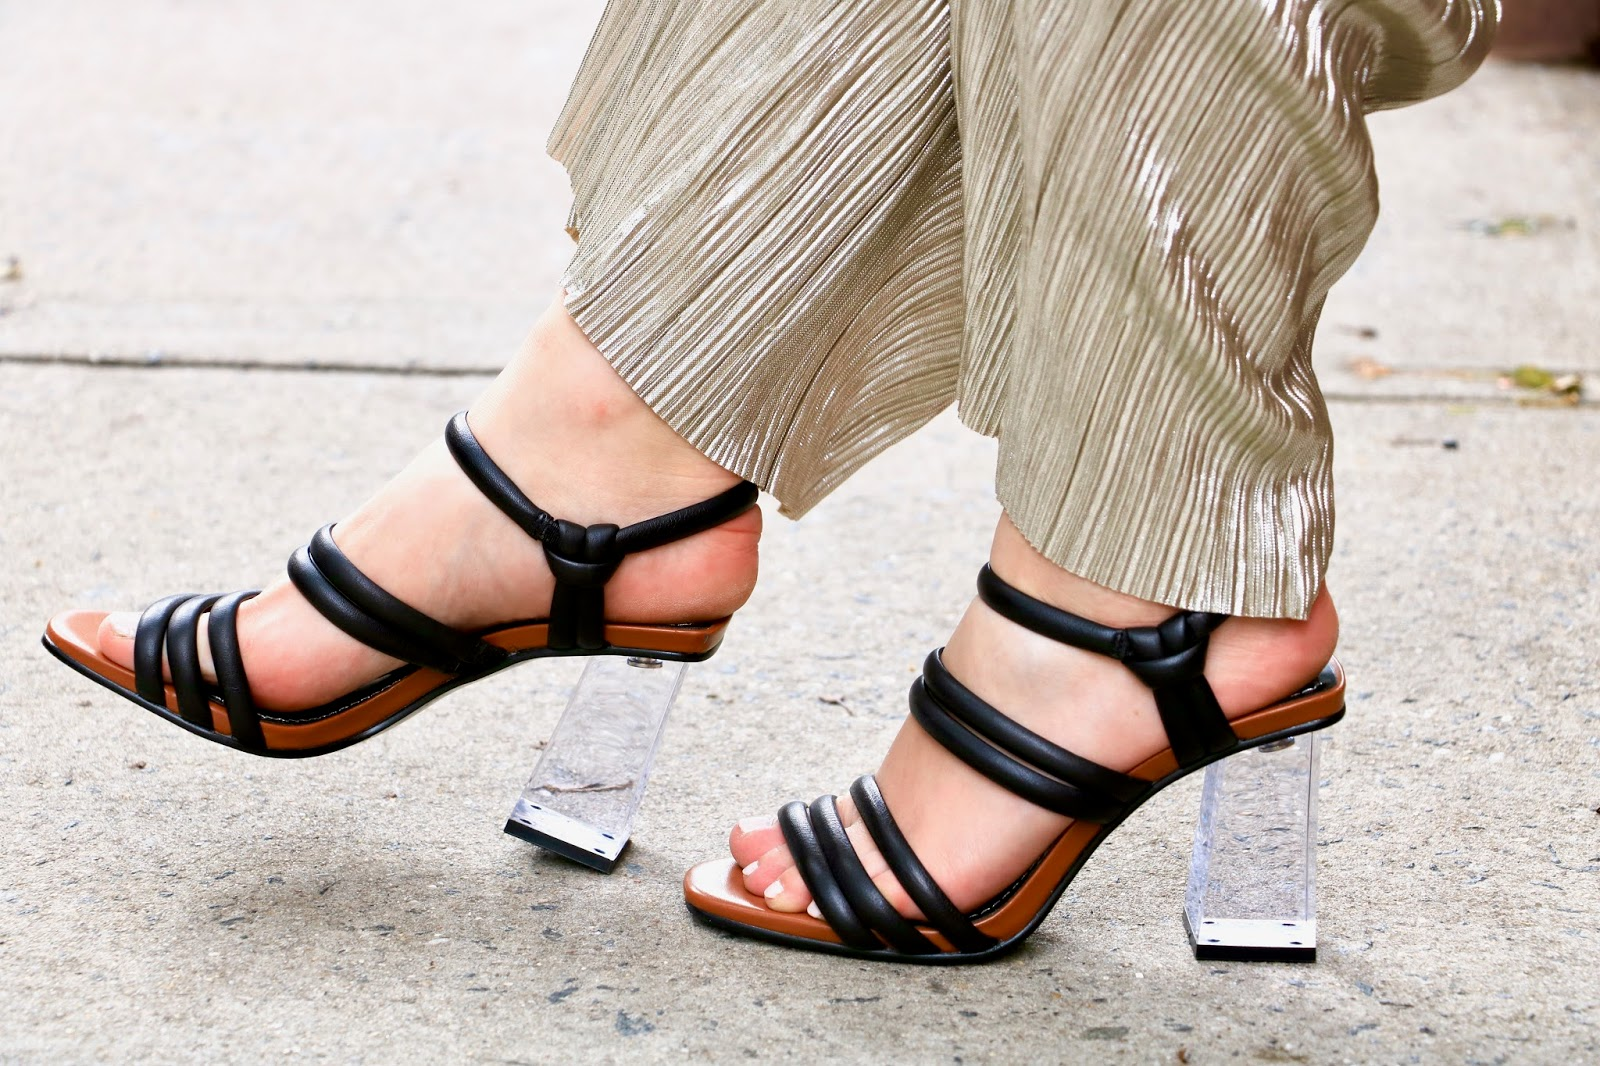 nyc fashion blogger Kathleen Harper wearing black and lucite heels from Zara